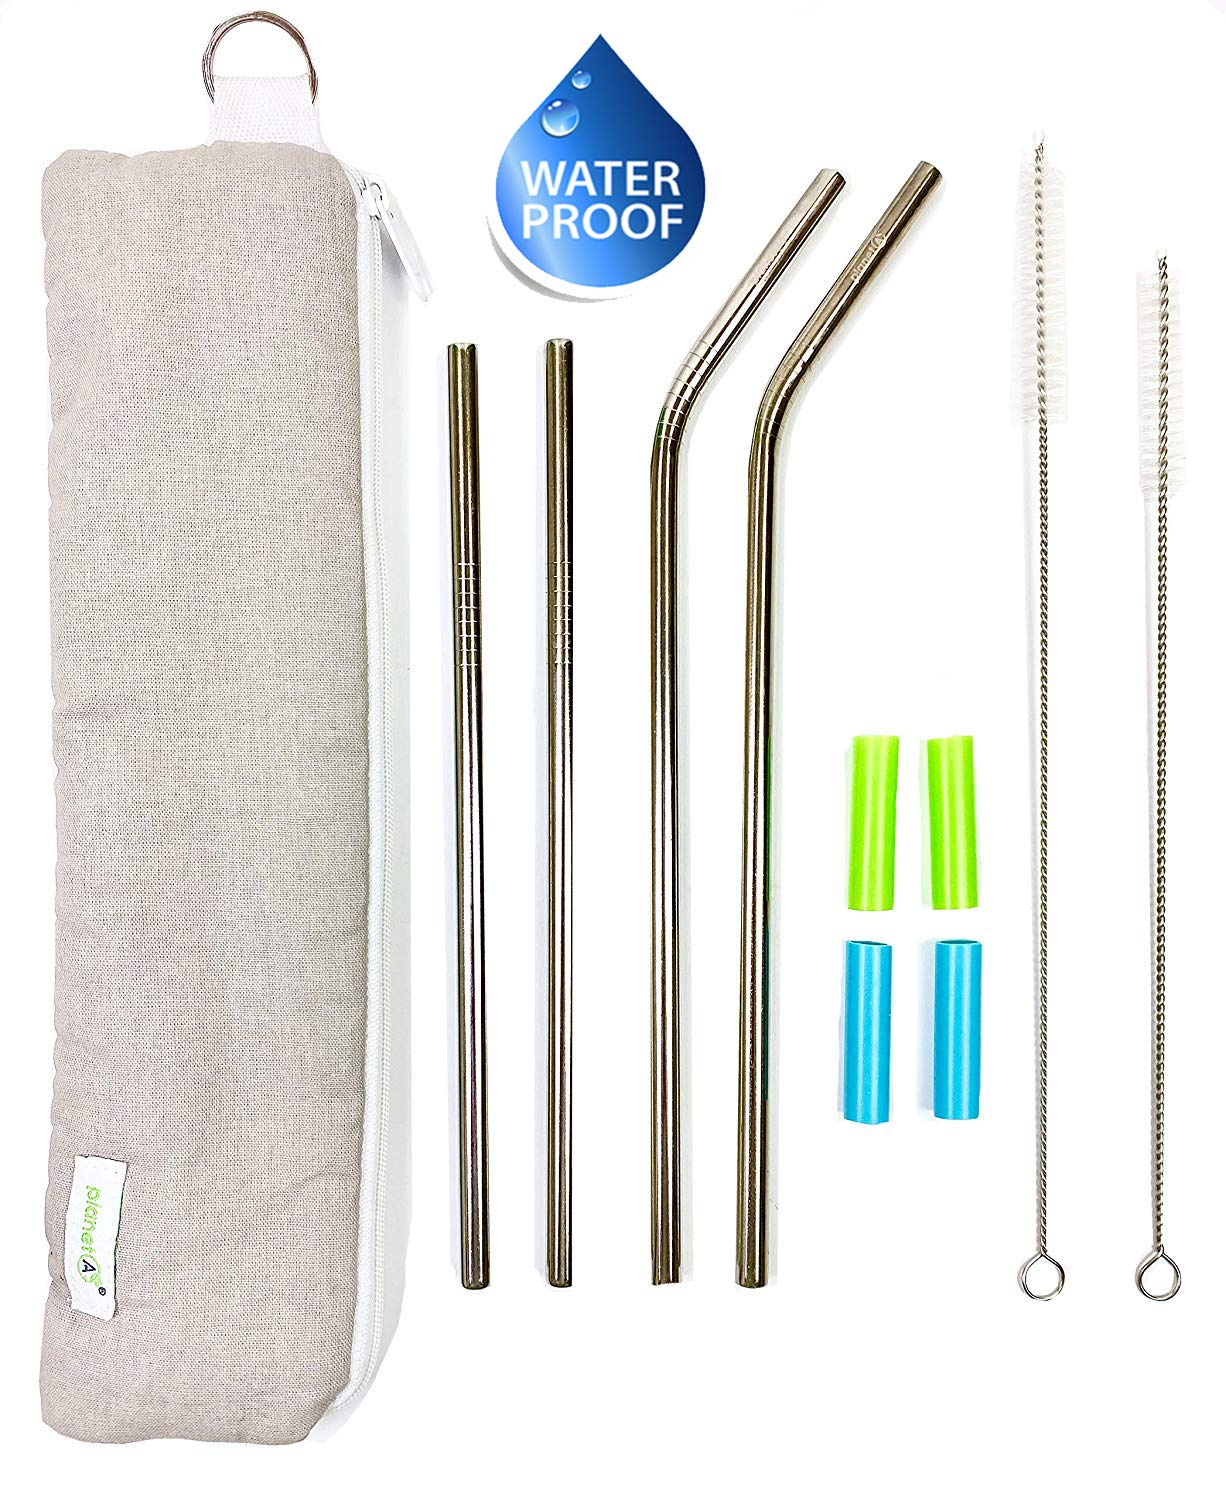 Eco-Friendly Reusable Stainless Steel Straws With Cotton Lightweight Waterproof Travel Pouch, Silicone Tips, and Long Straws That Will Fit 20 and 30 Ounce Tumblers